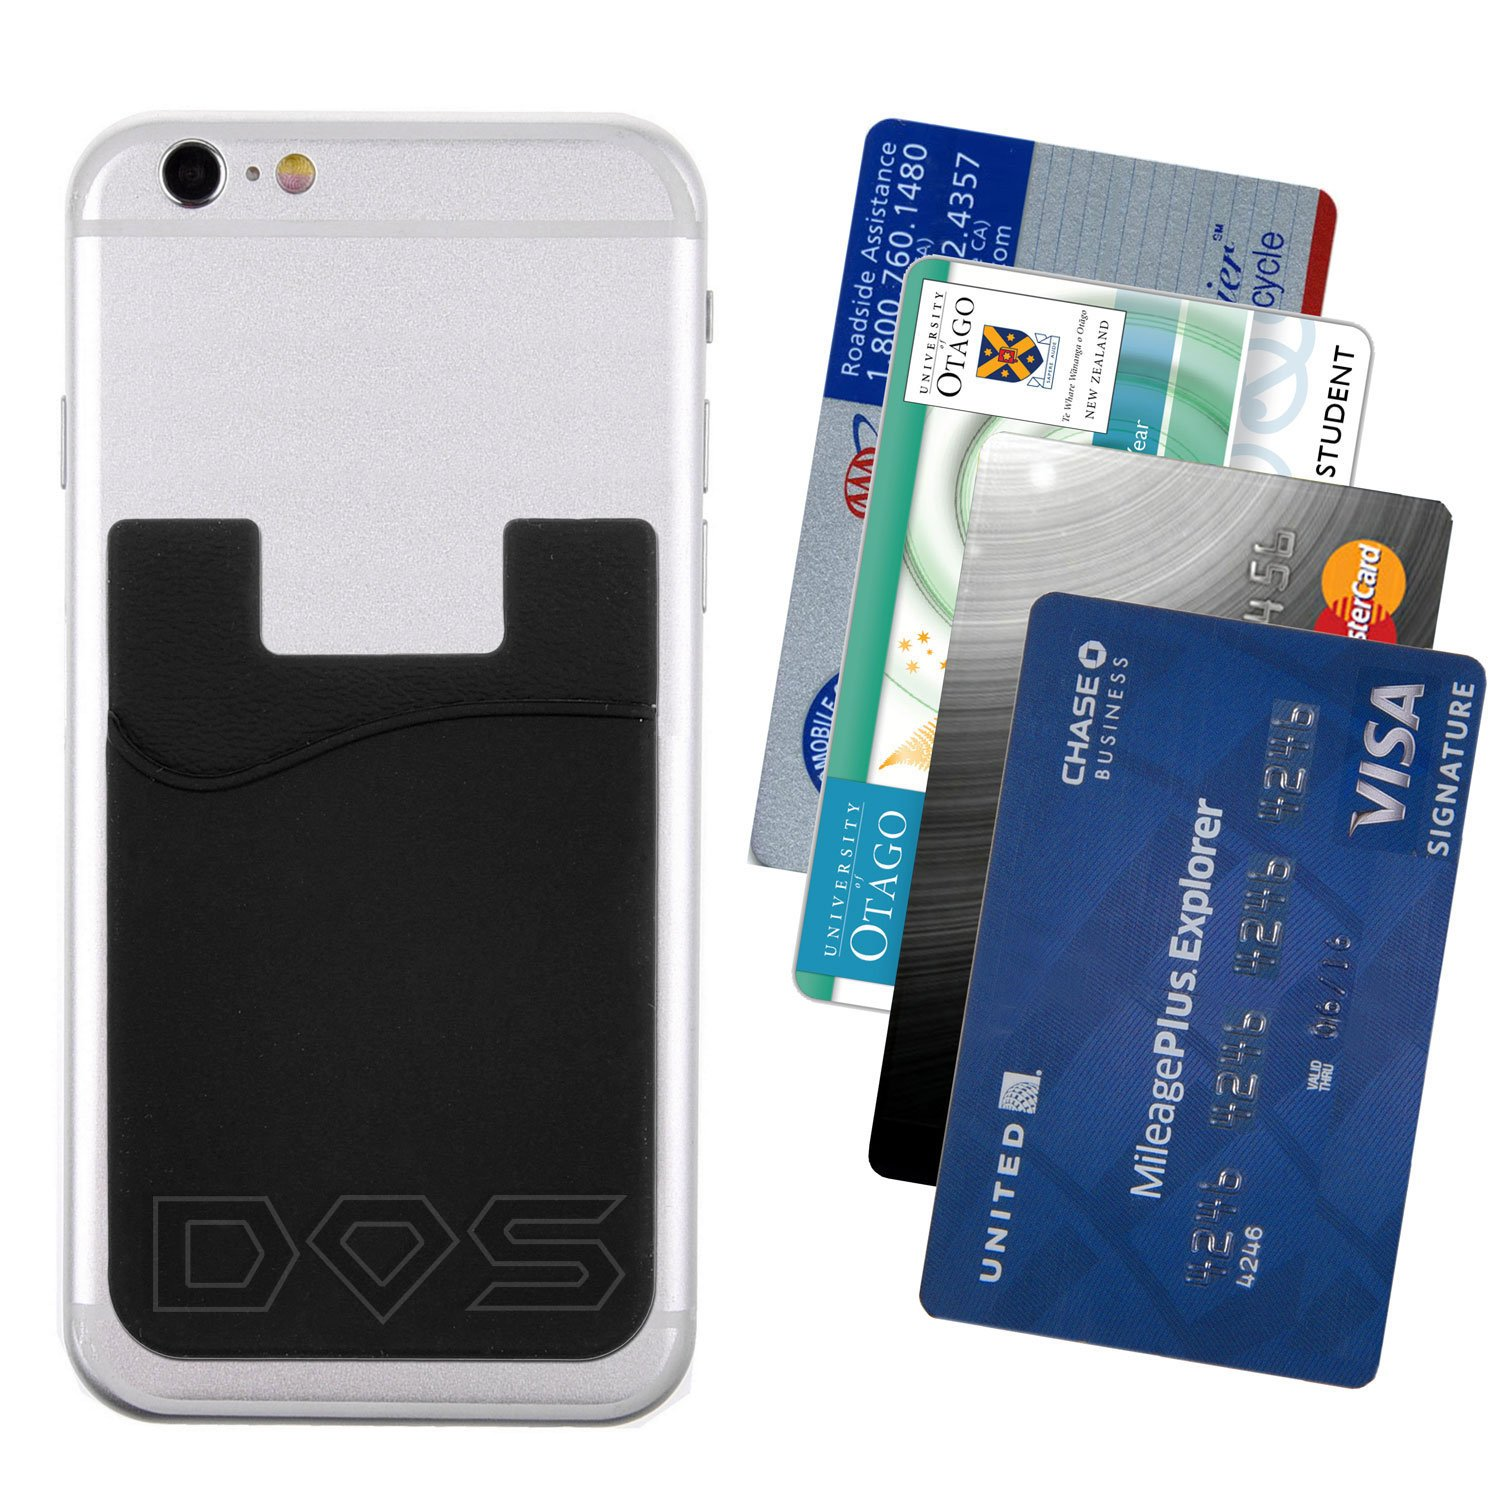 Amazon.com: Stick-On Wallet - ID/Credit Card Holder For Phones ...